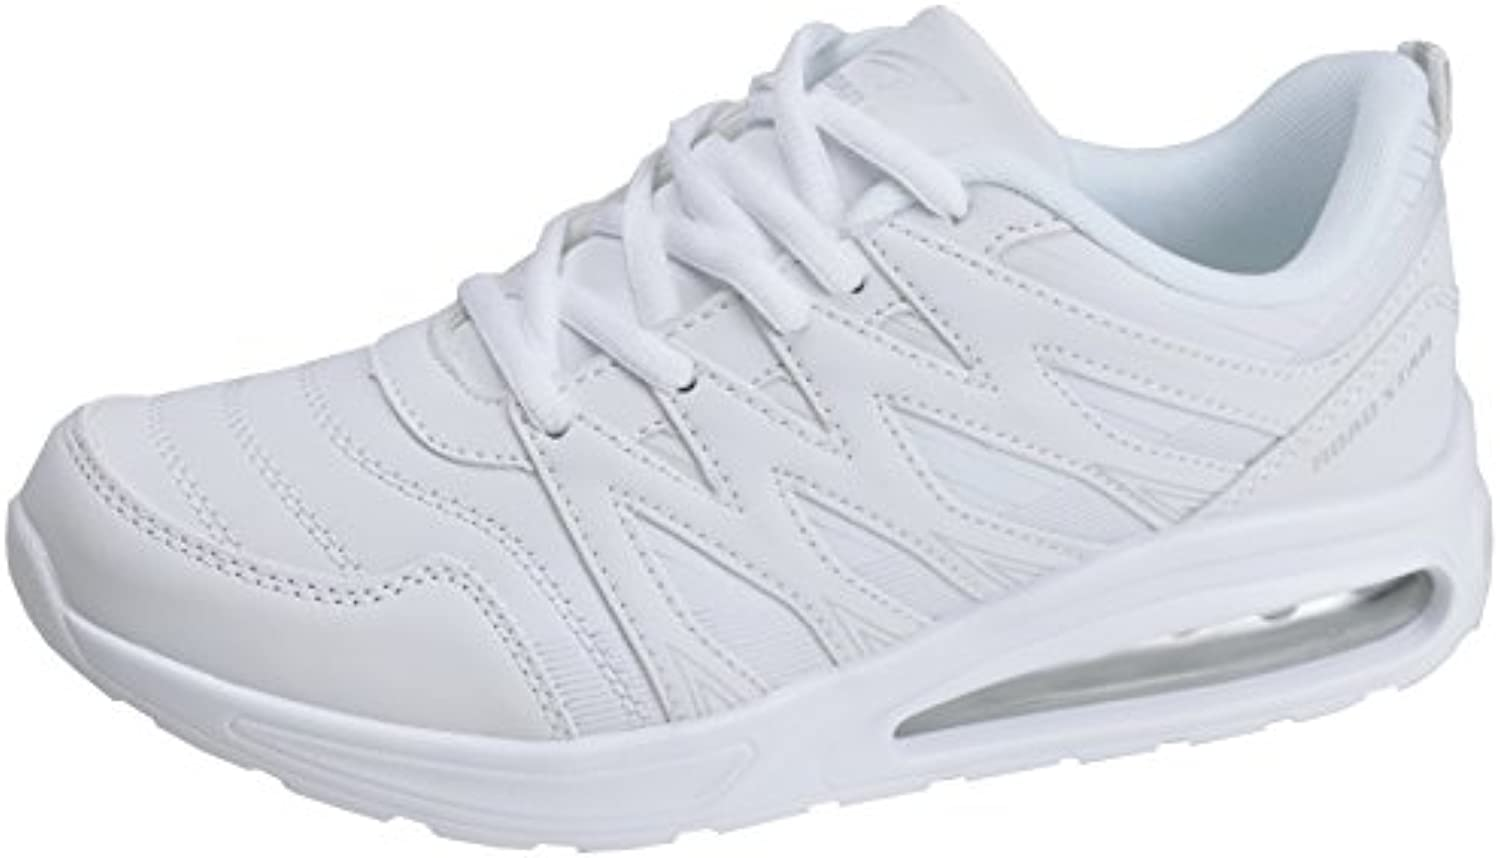 Lacoste Straightset Bl 1 SPW Wht, Zapatillas para Mujer -